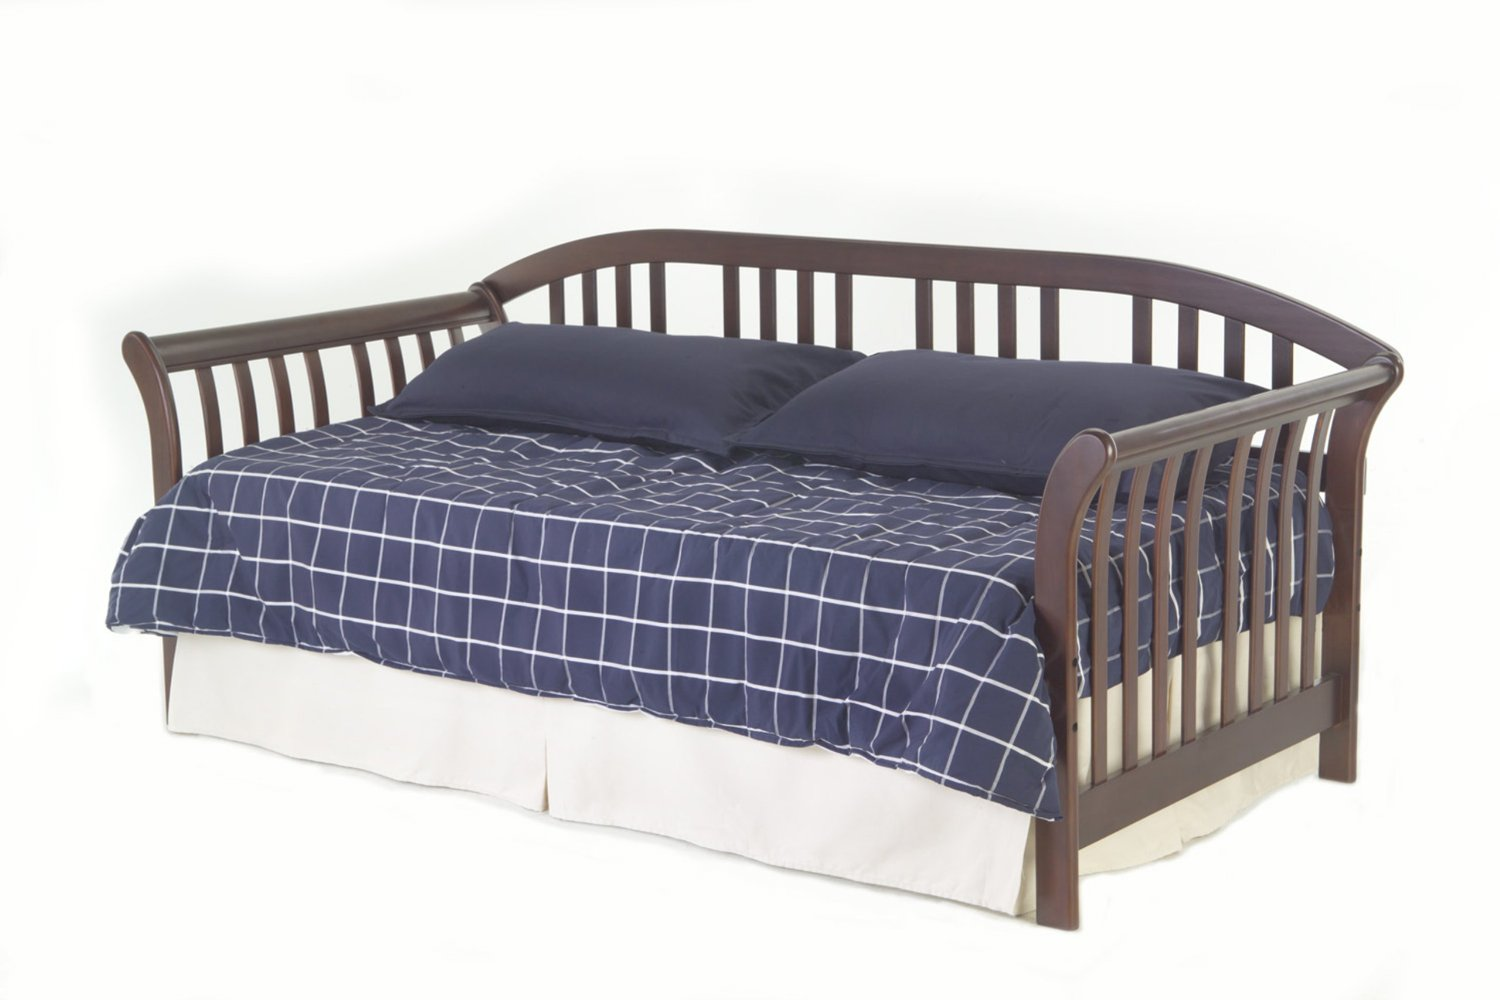 Fashion Bed Group Salem Complete Wood Daybed with Euro Top Spring Support Frame and Pop-Up Trundle Bed, Mahogany Finish, Twin